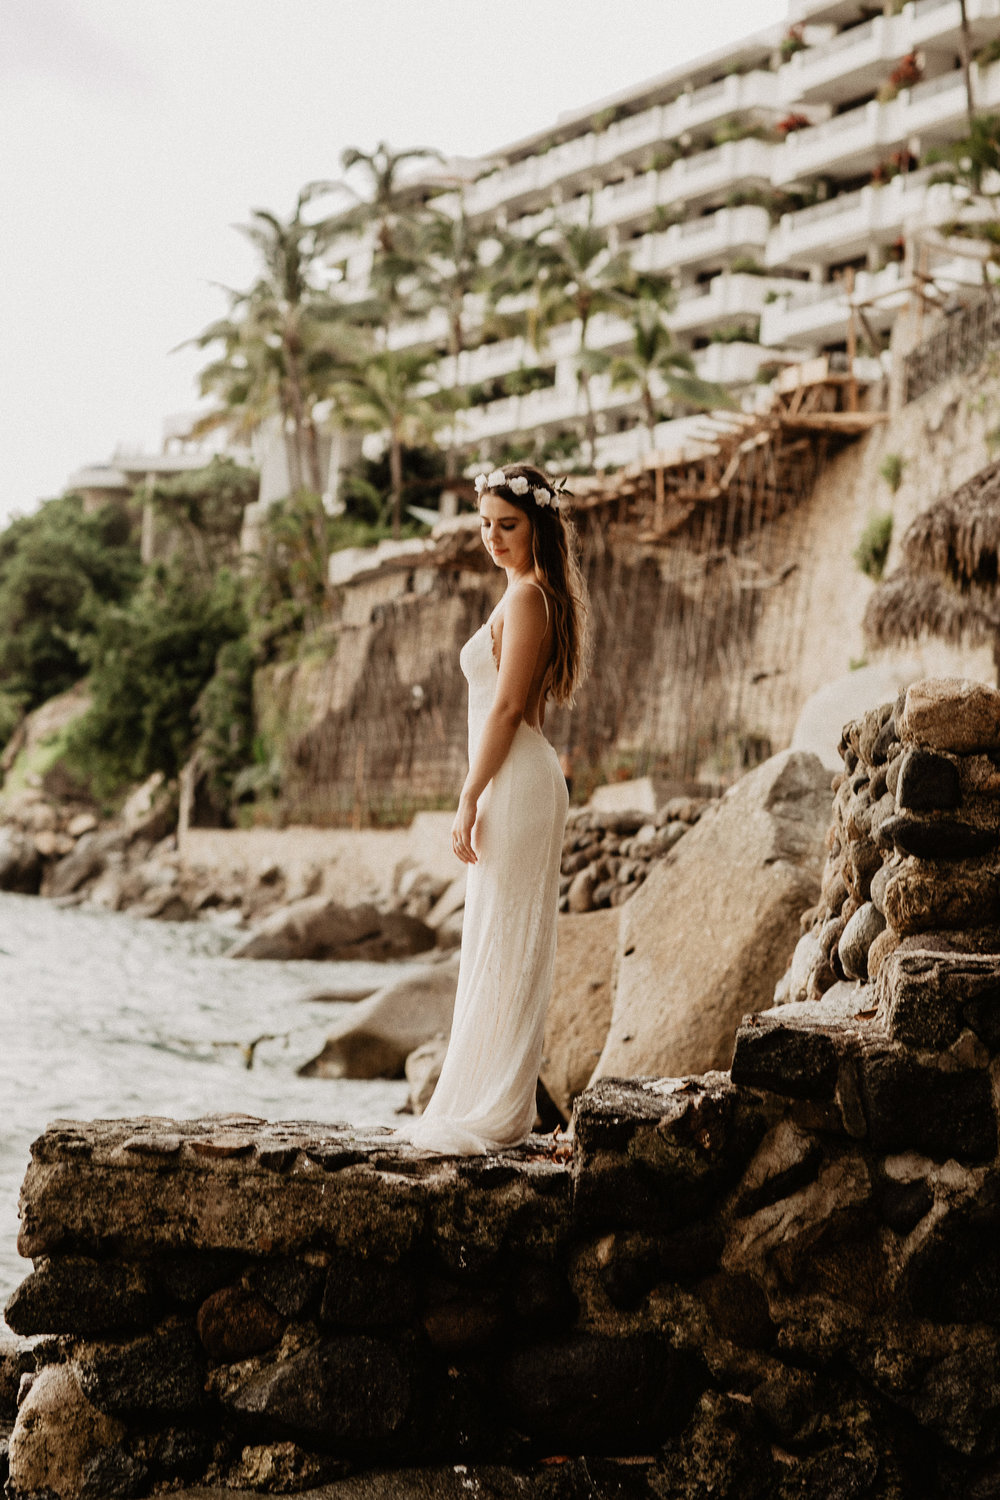 alfonso_flores_destination_wedding_photography_puerto_vallarta_hotel_barcelo_vallarta_cuttler_amela-752.JPG